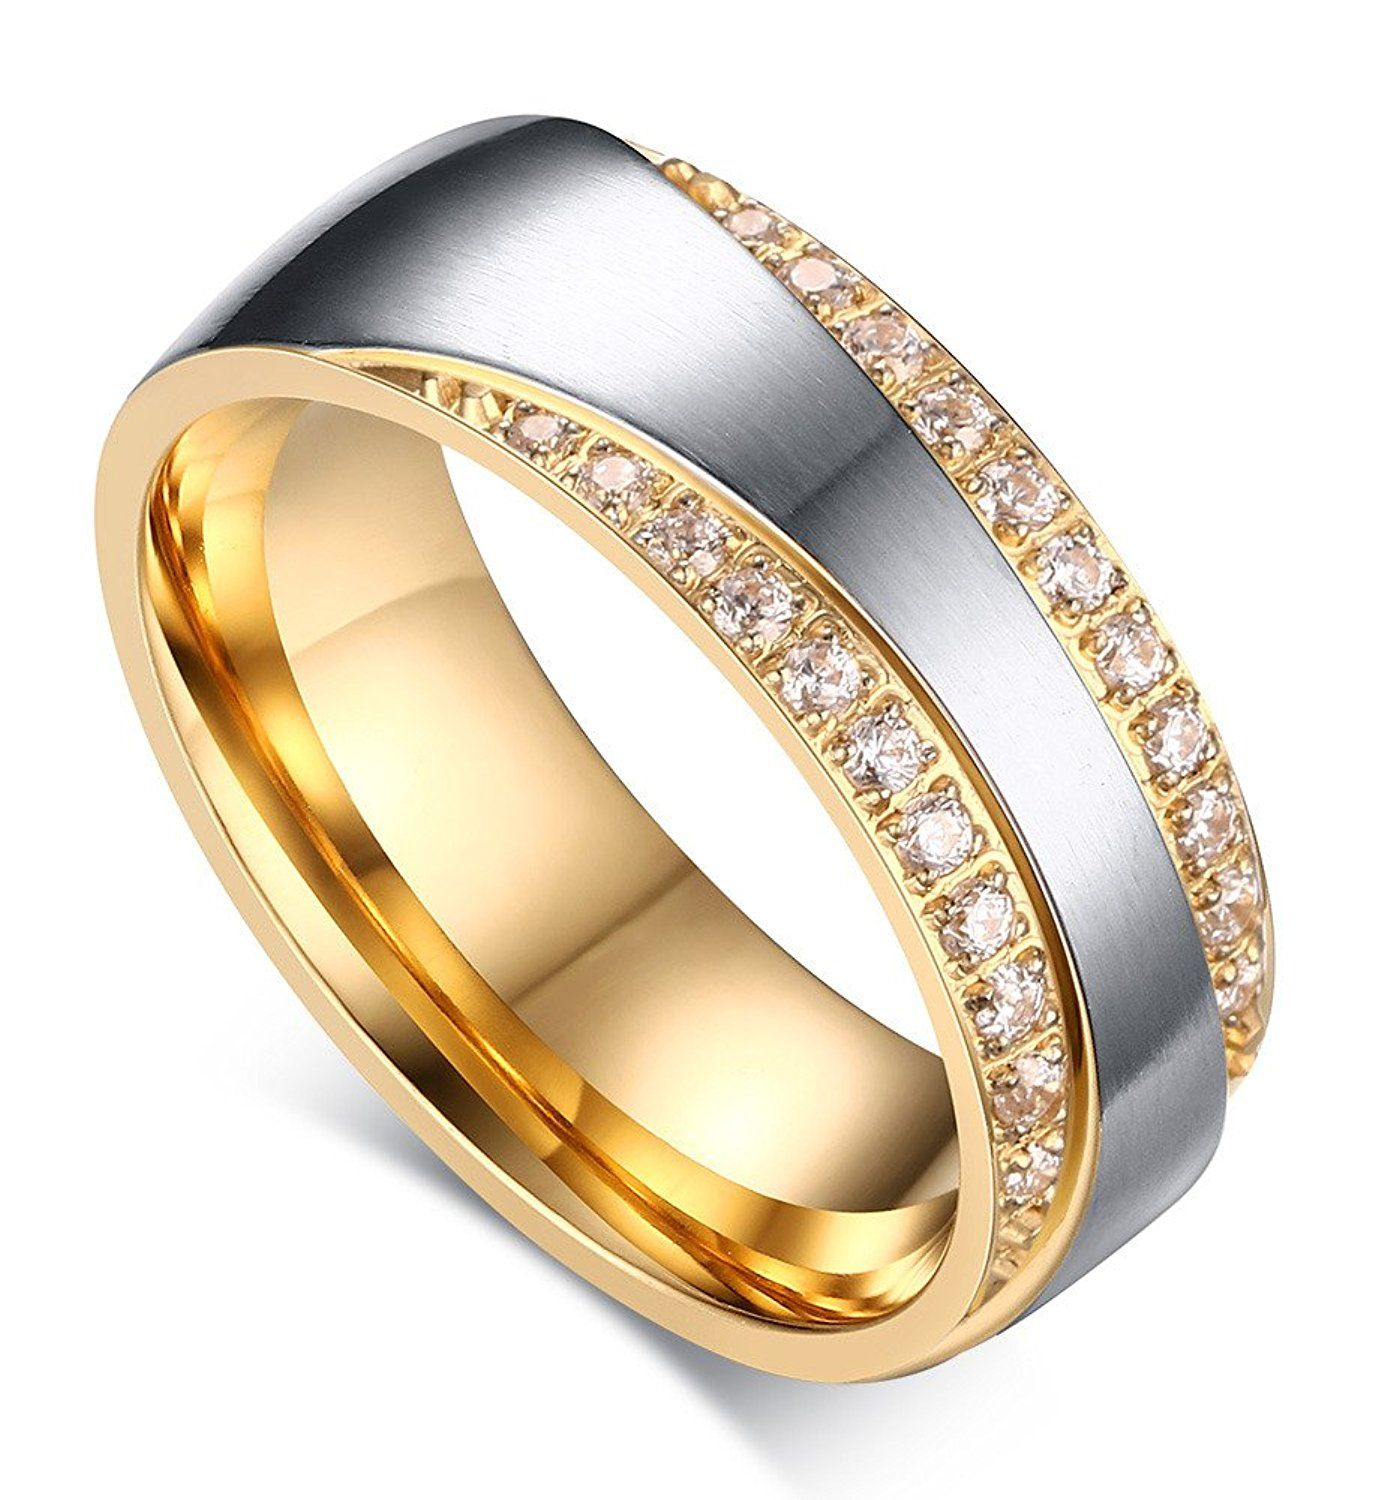 7mm Stainless Steel Gold Plated Twotone Promise Rings for